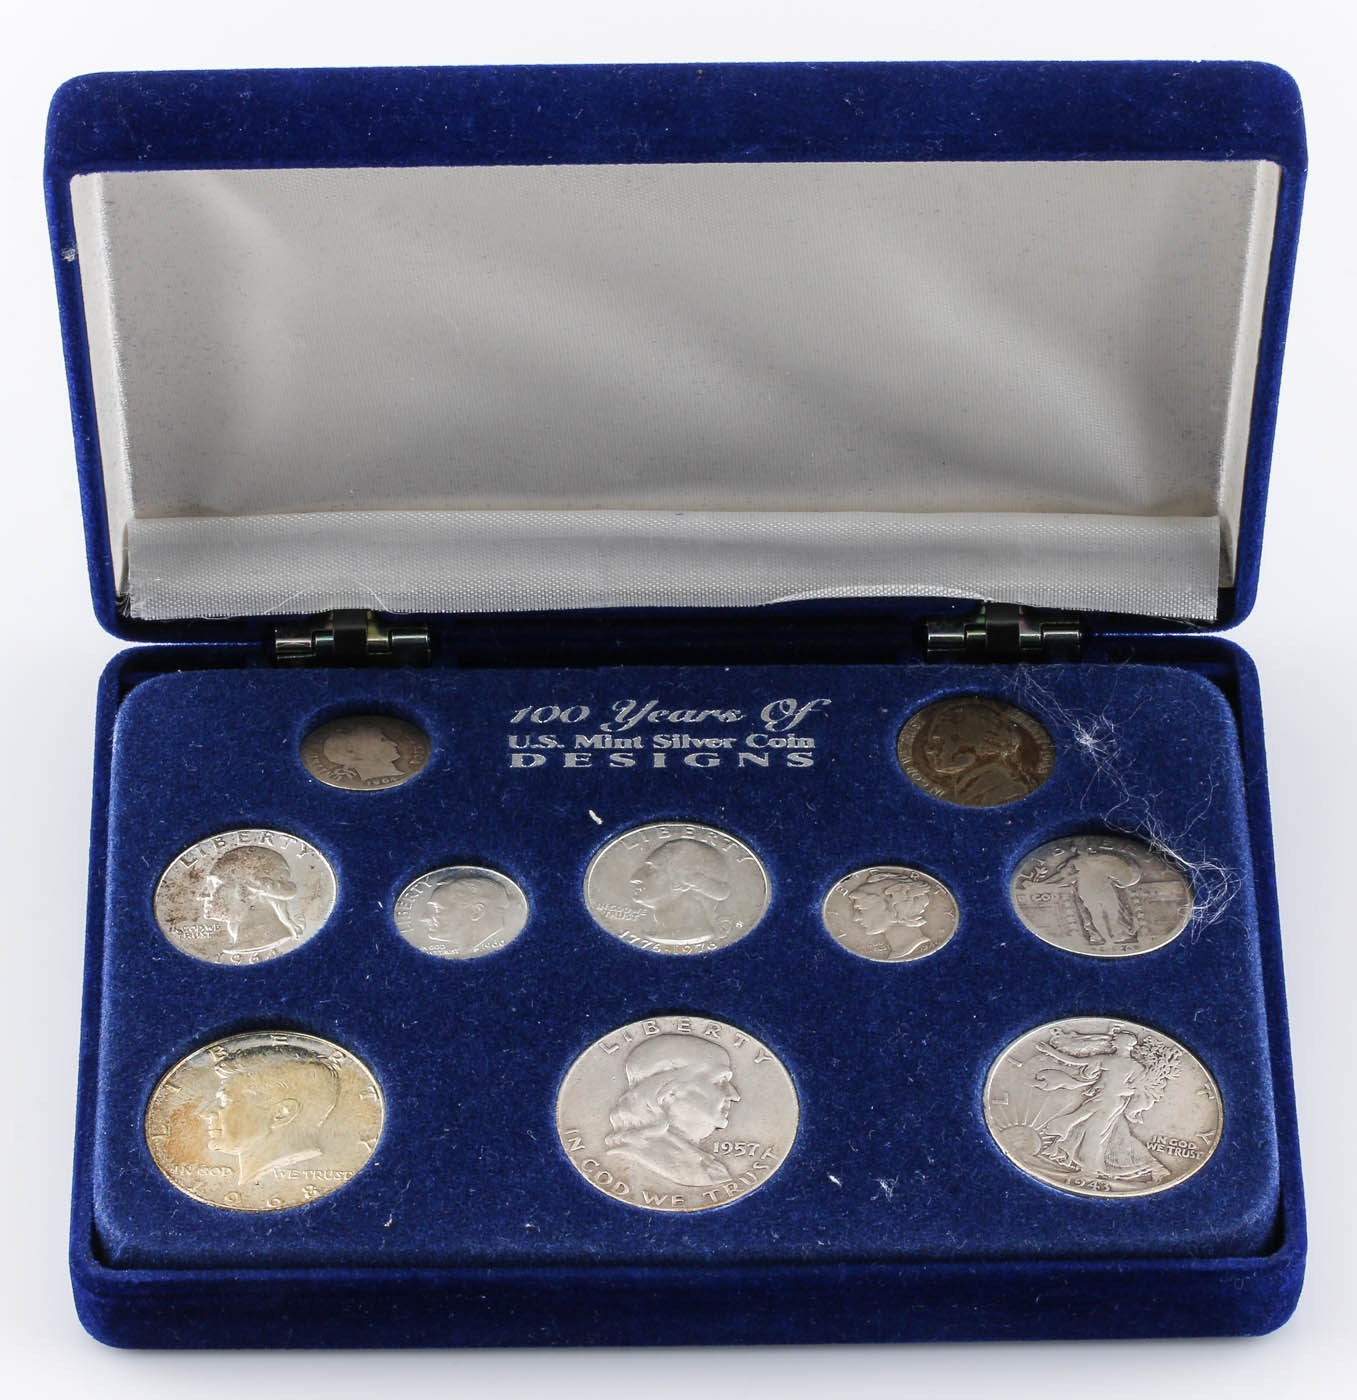 """""""100 Years of U.S. Mint Silver Coin Designs"""" Coin Set"""